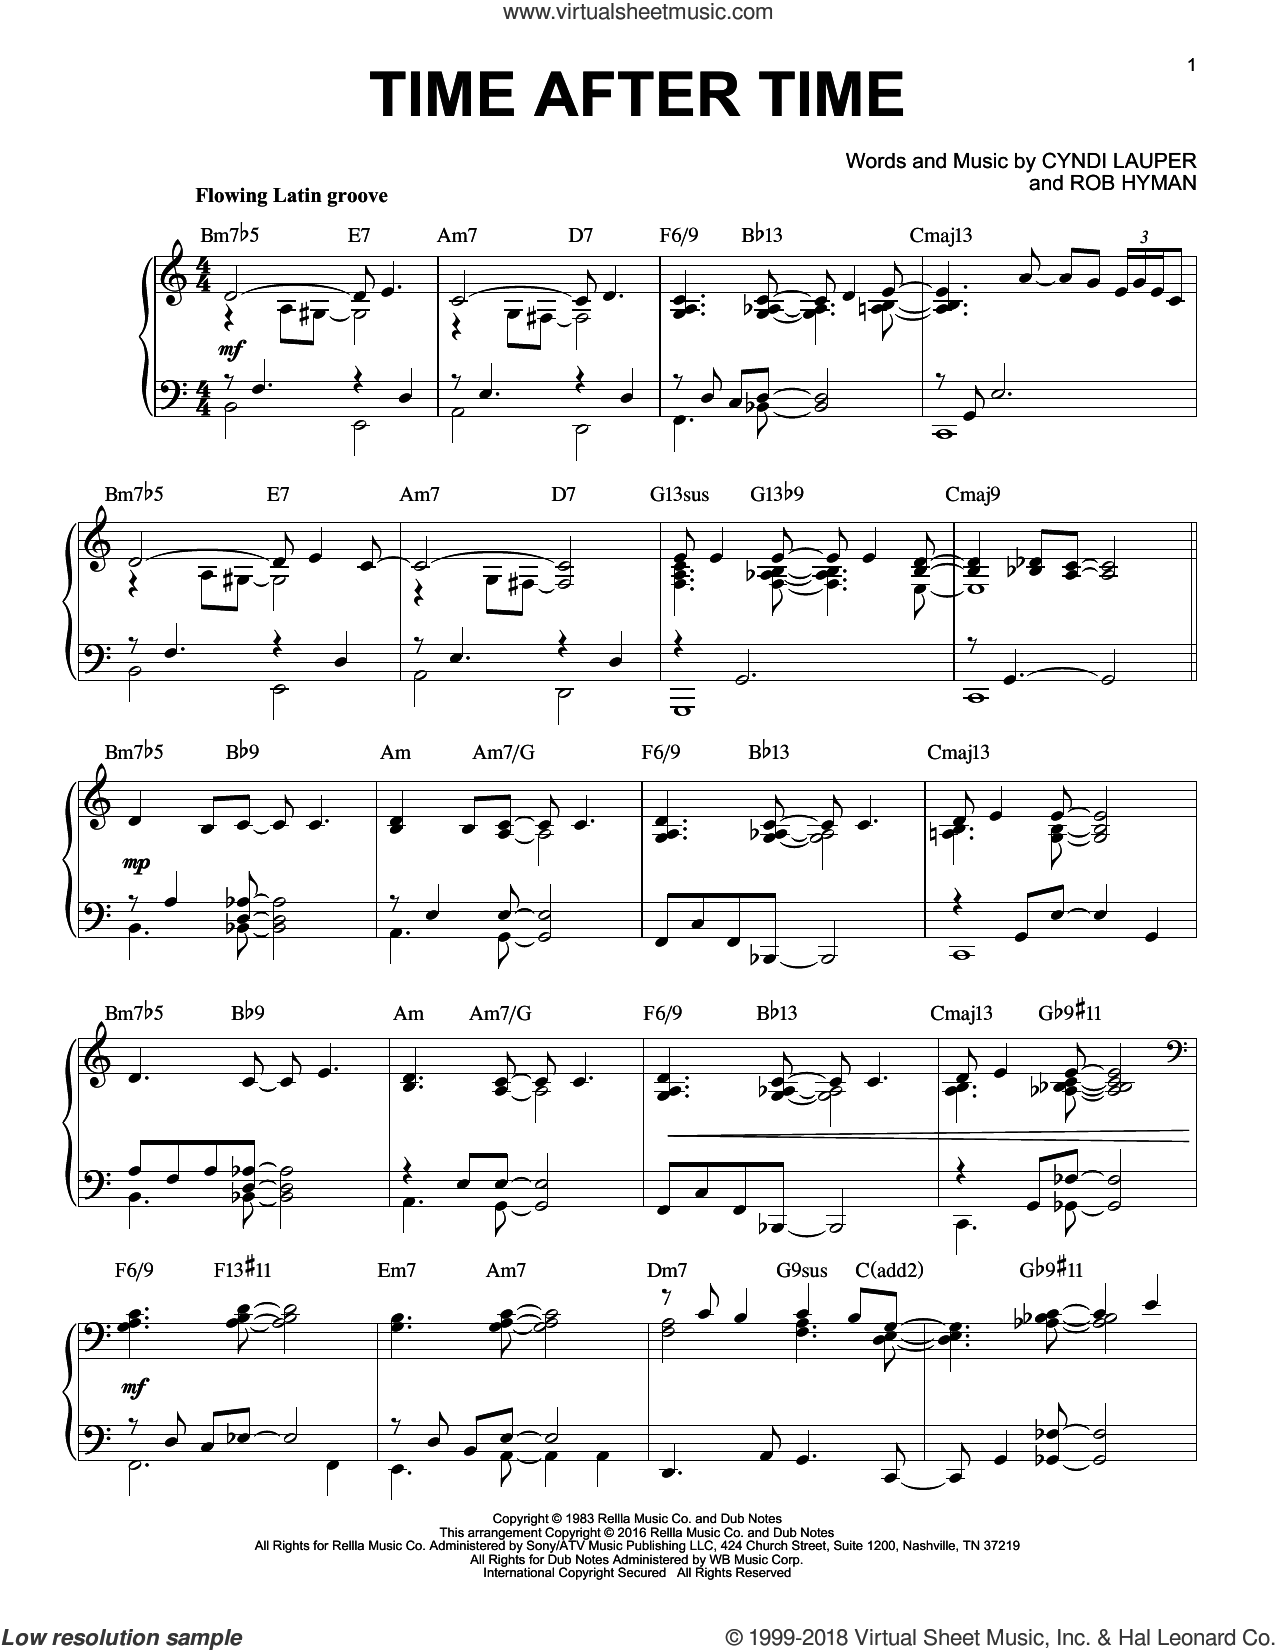 Time After Time [Jazz version] (arr. Brent Edstrom) sheet music for piano solo by Cyndi Lauper, Inoj, Javier Colon and Rob Hyman, intermediate skill level